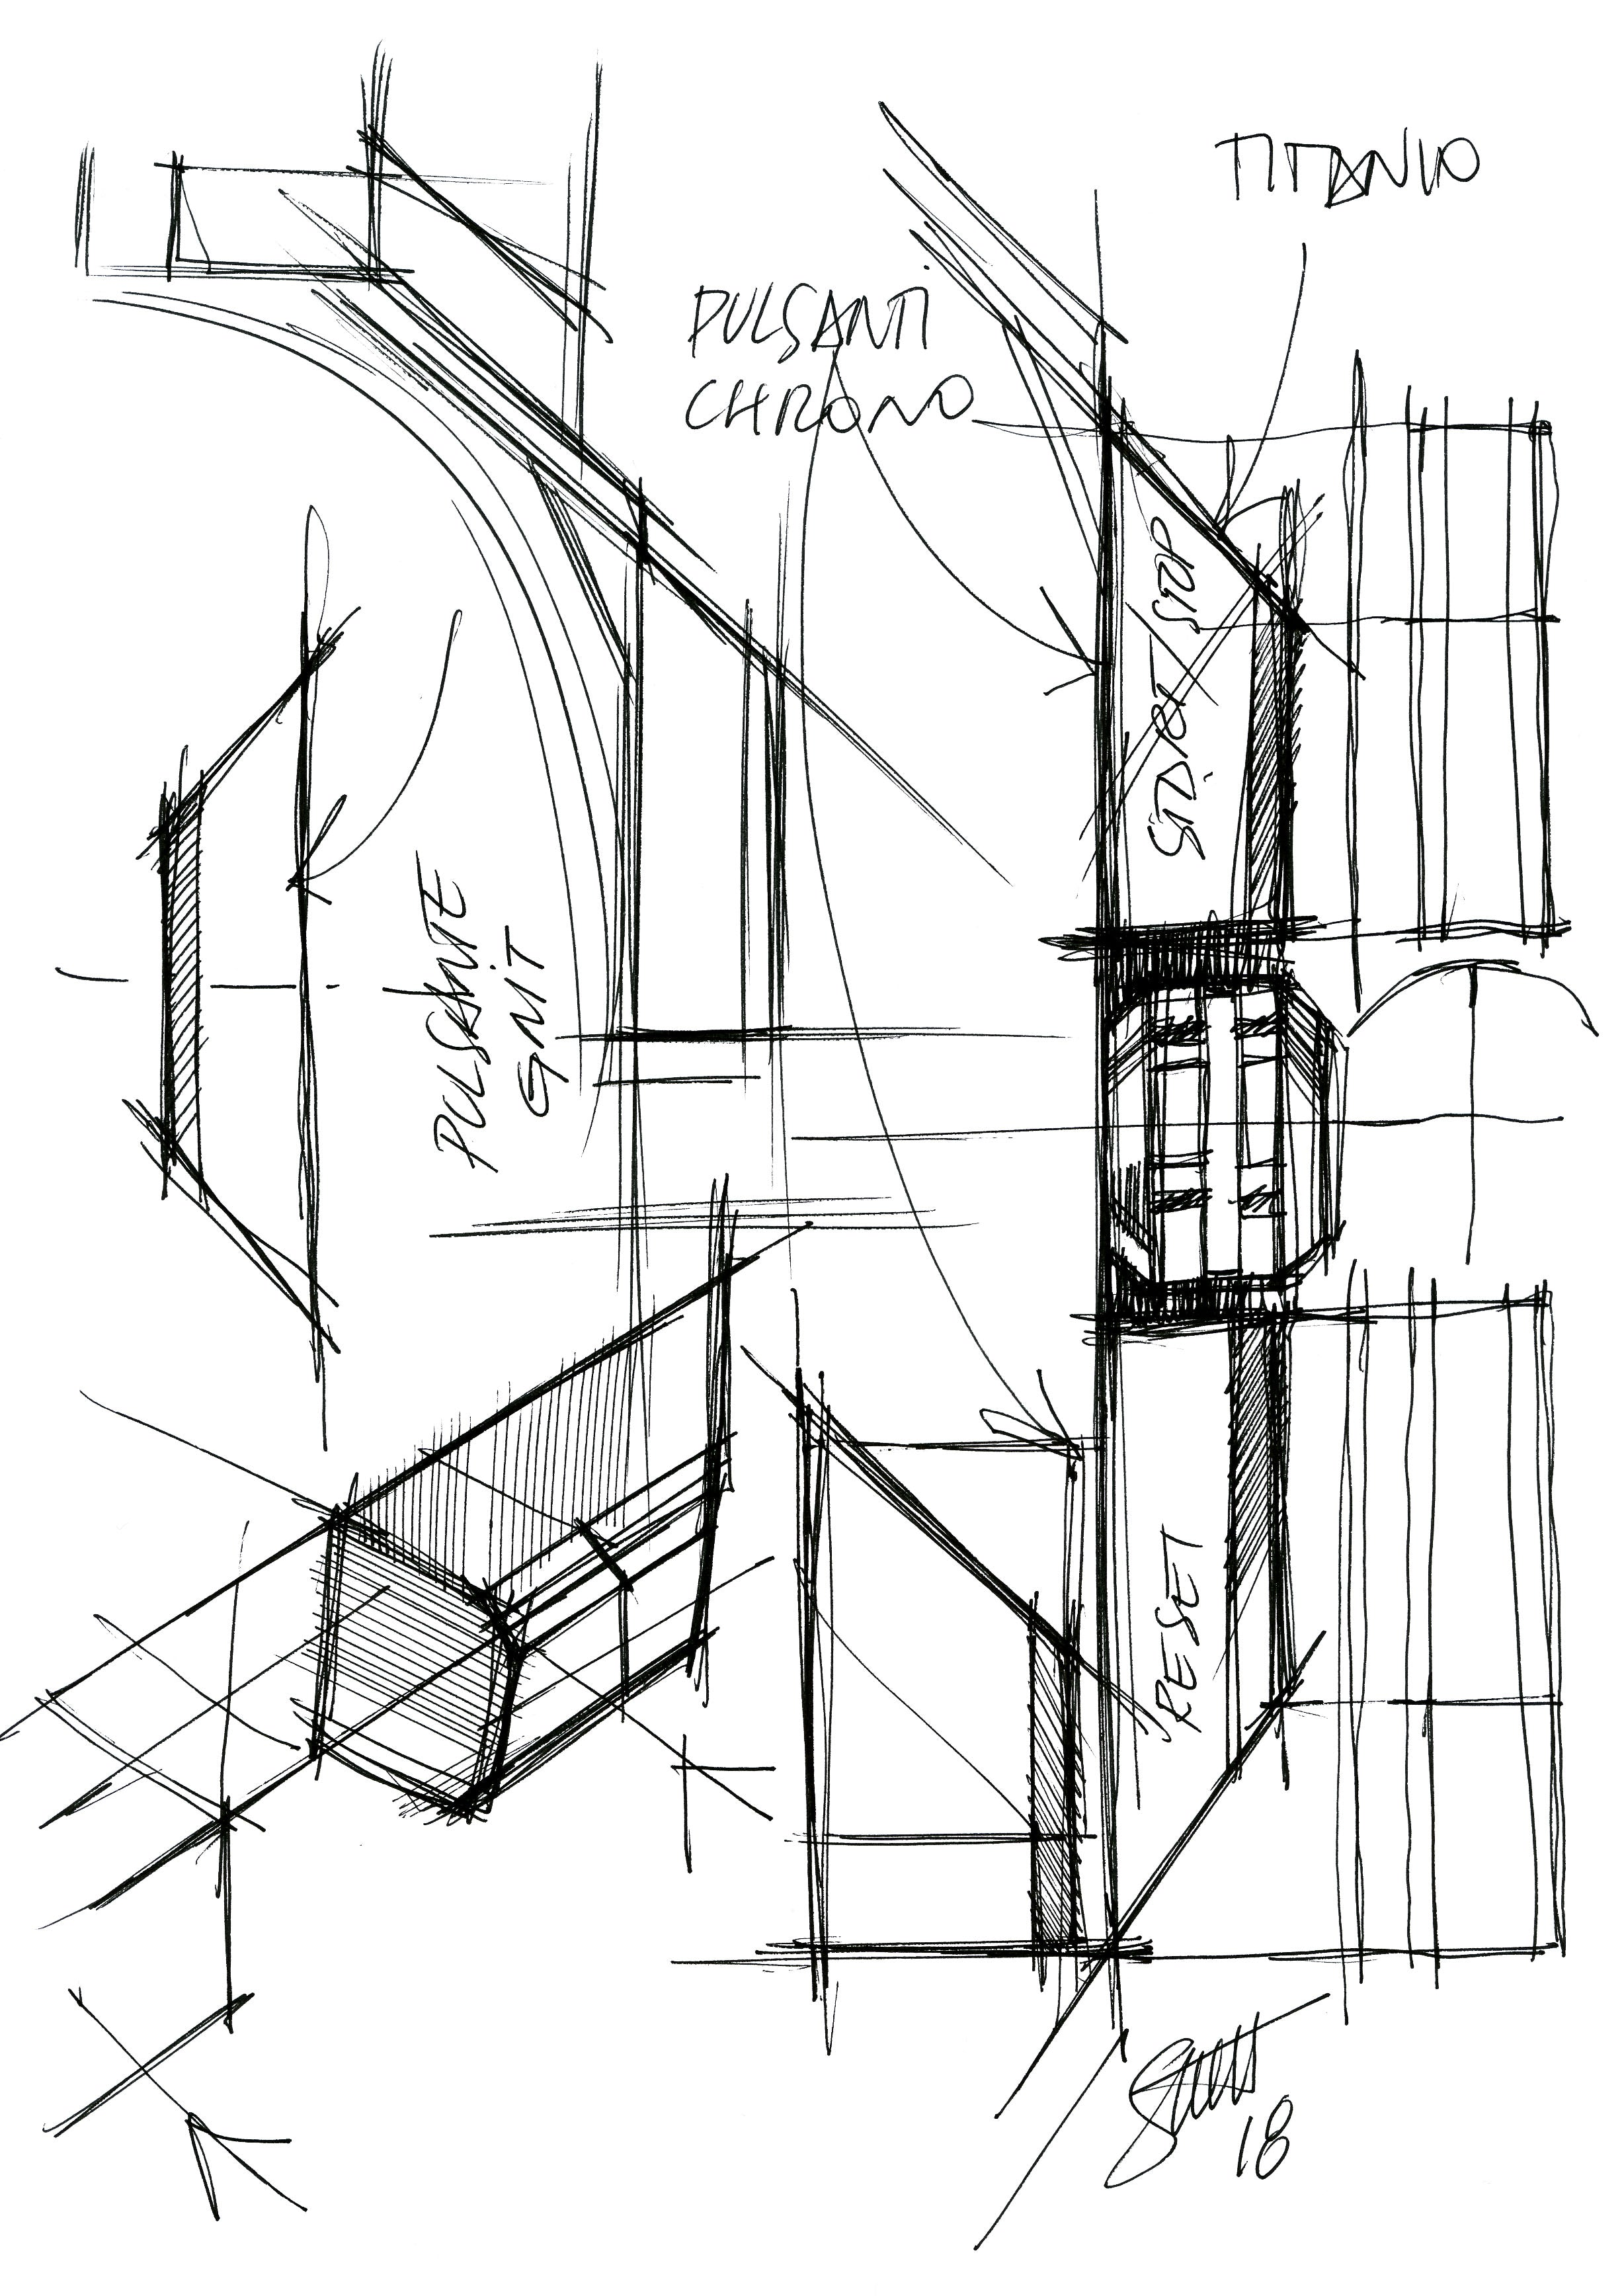 Bulari Octo Finissimo sketches in The Balance of Symmetry and Asymmetry in Dial Design for A Collected Man London